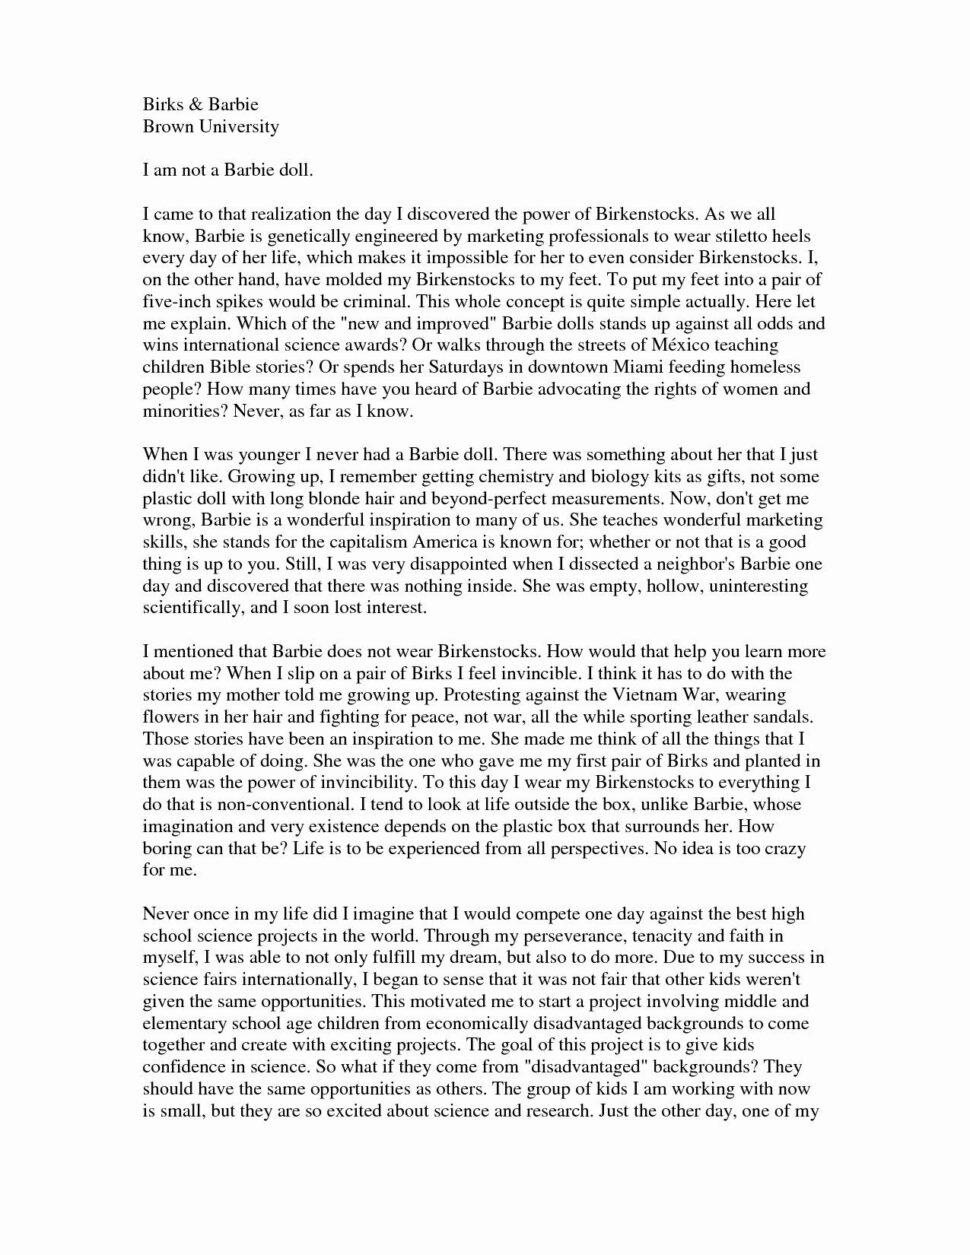 Large Size of College Application Essay Heading Format